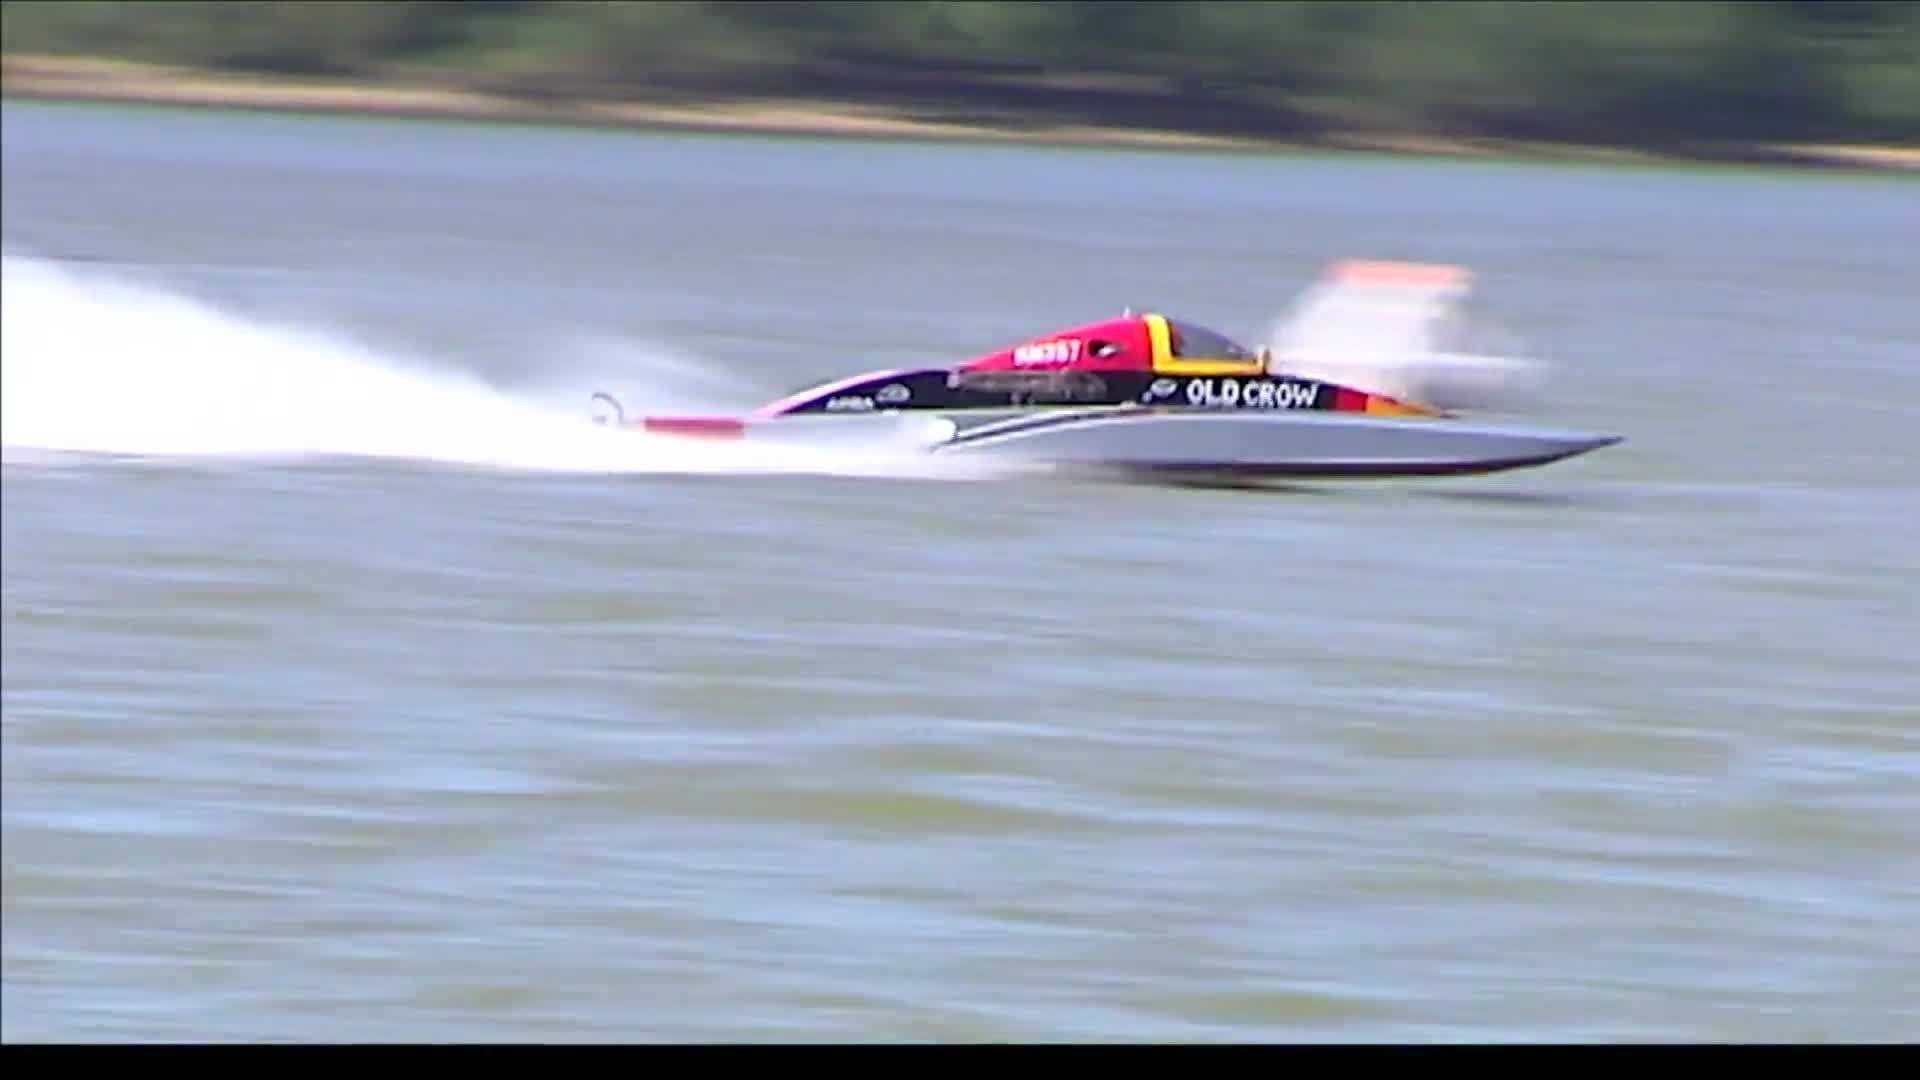 Evansville HydroFest: There will be no hydroplane racing this year